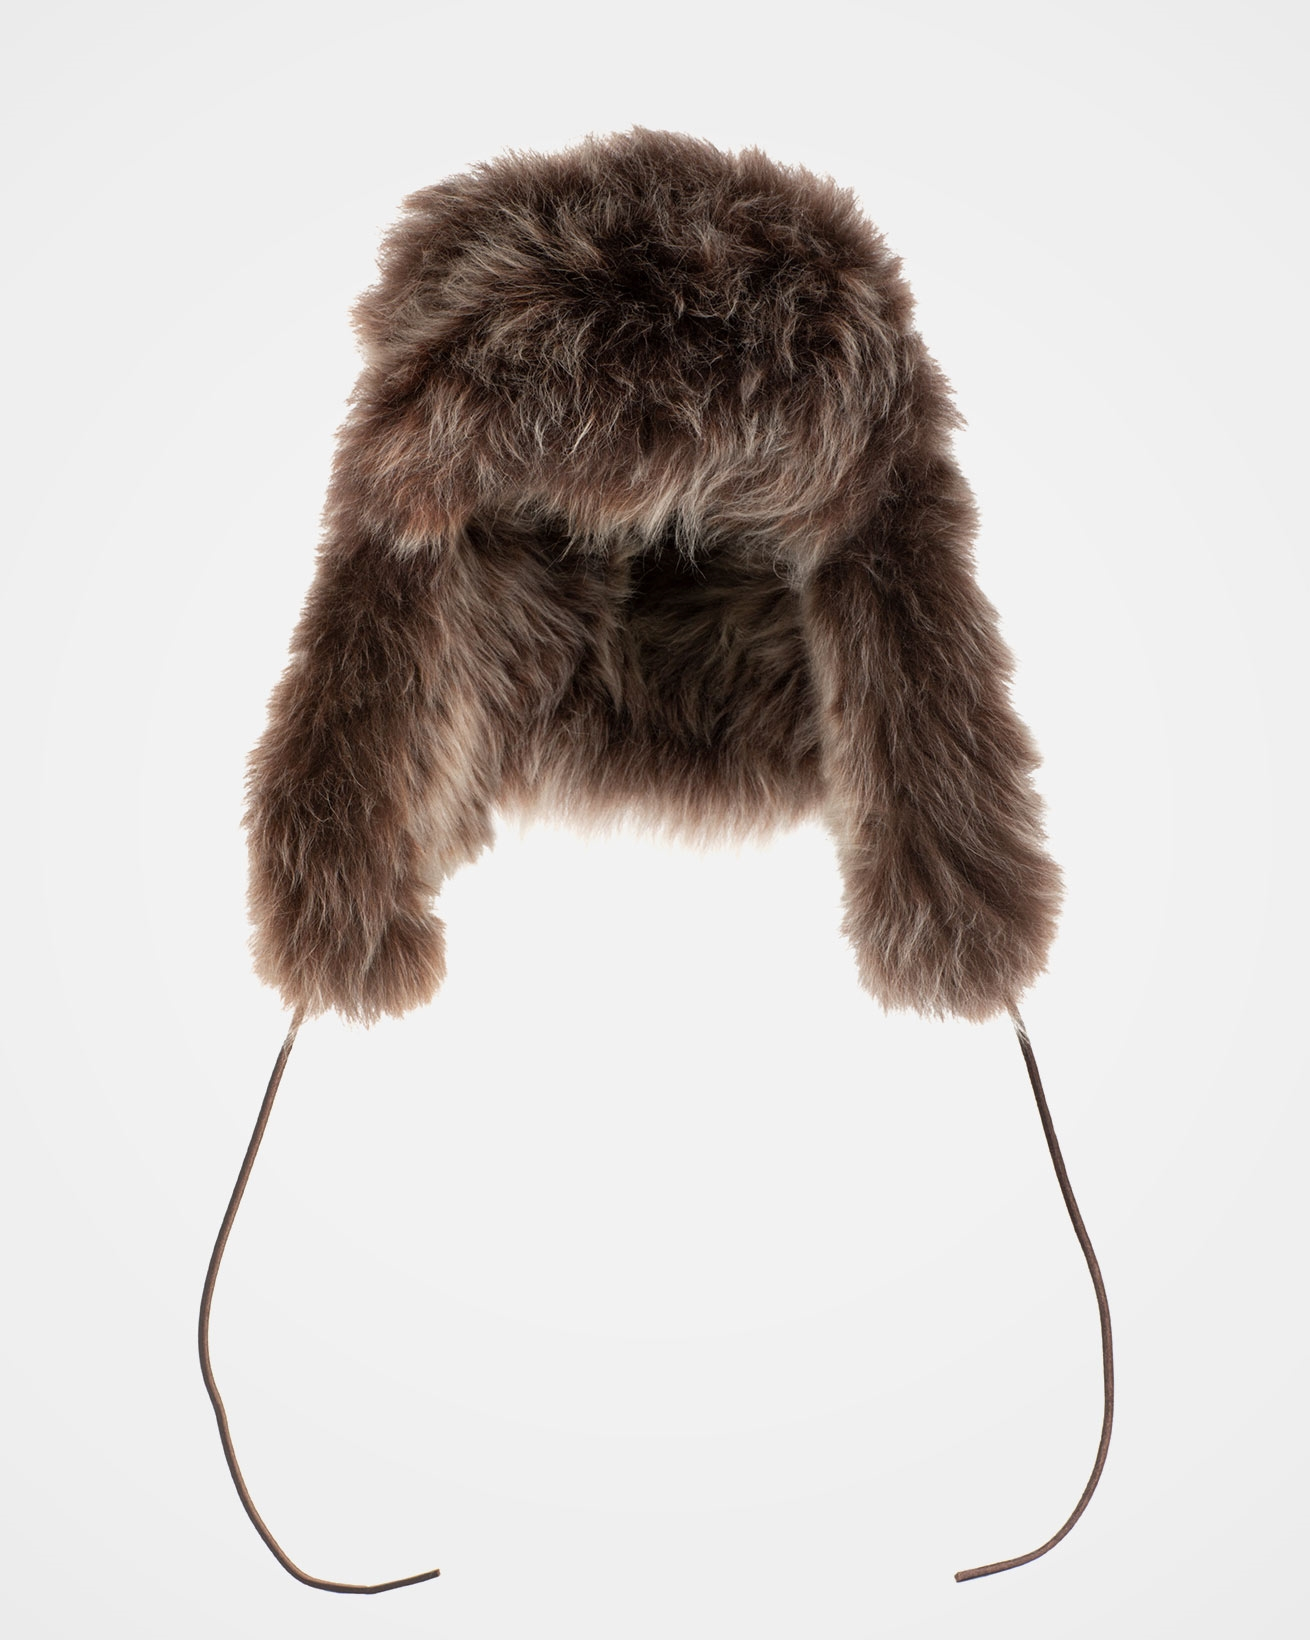 7445_sheepskin-hat-3_front_web.jpg